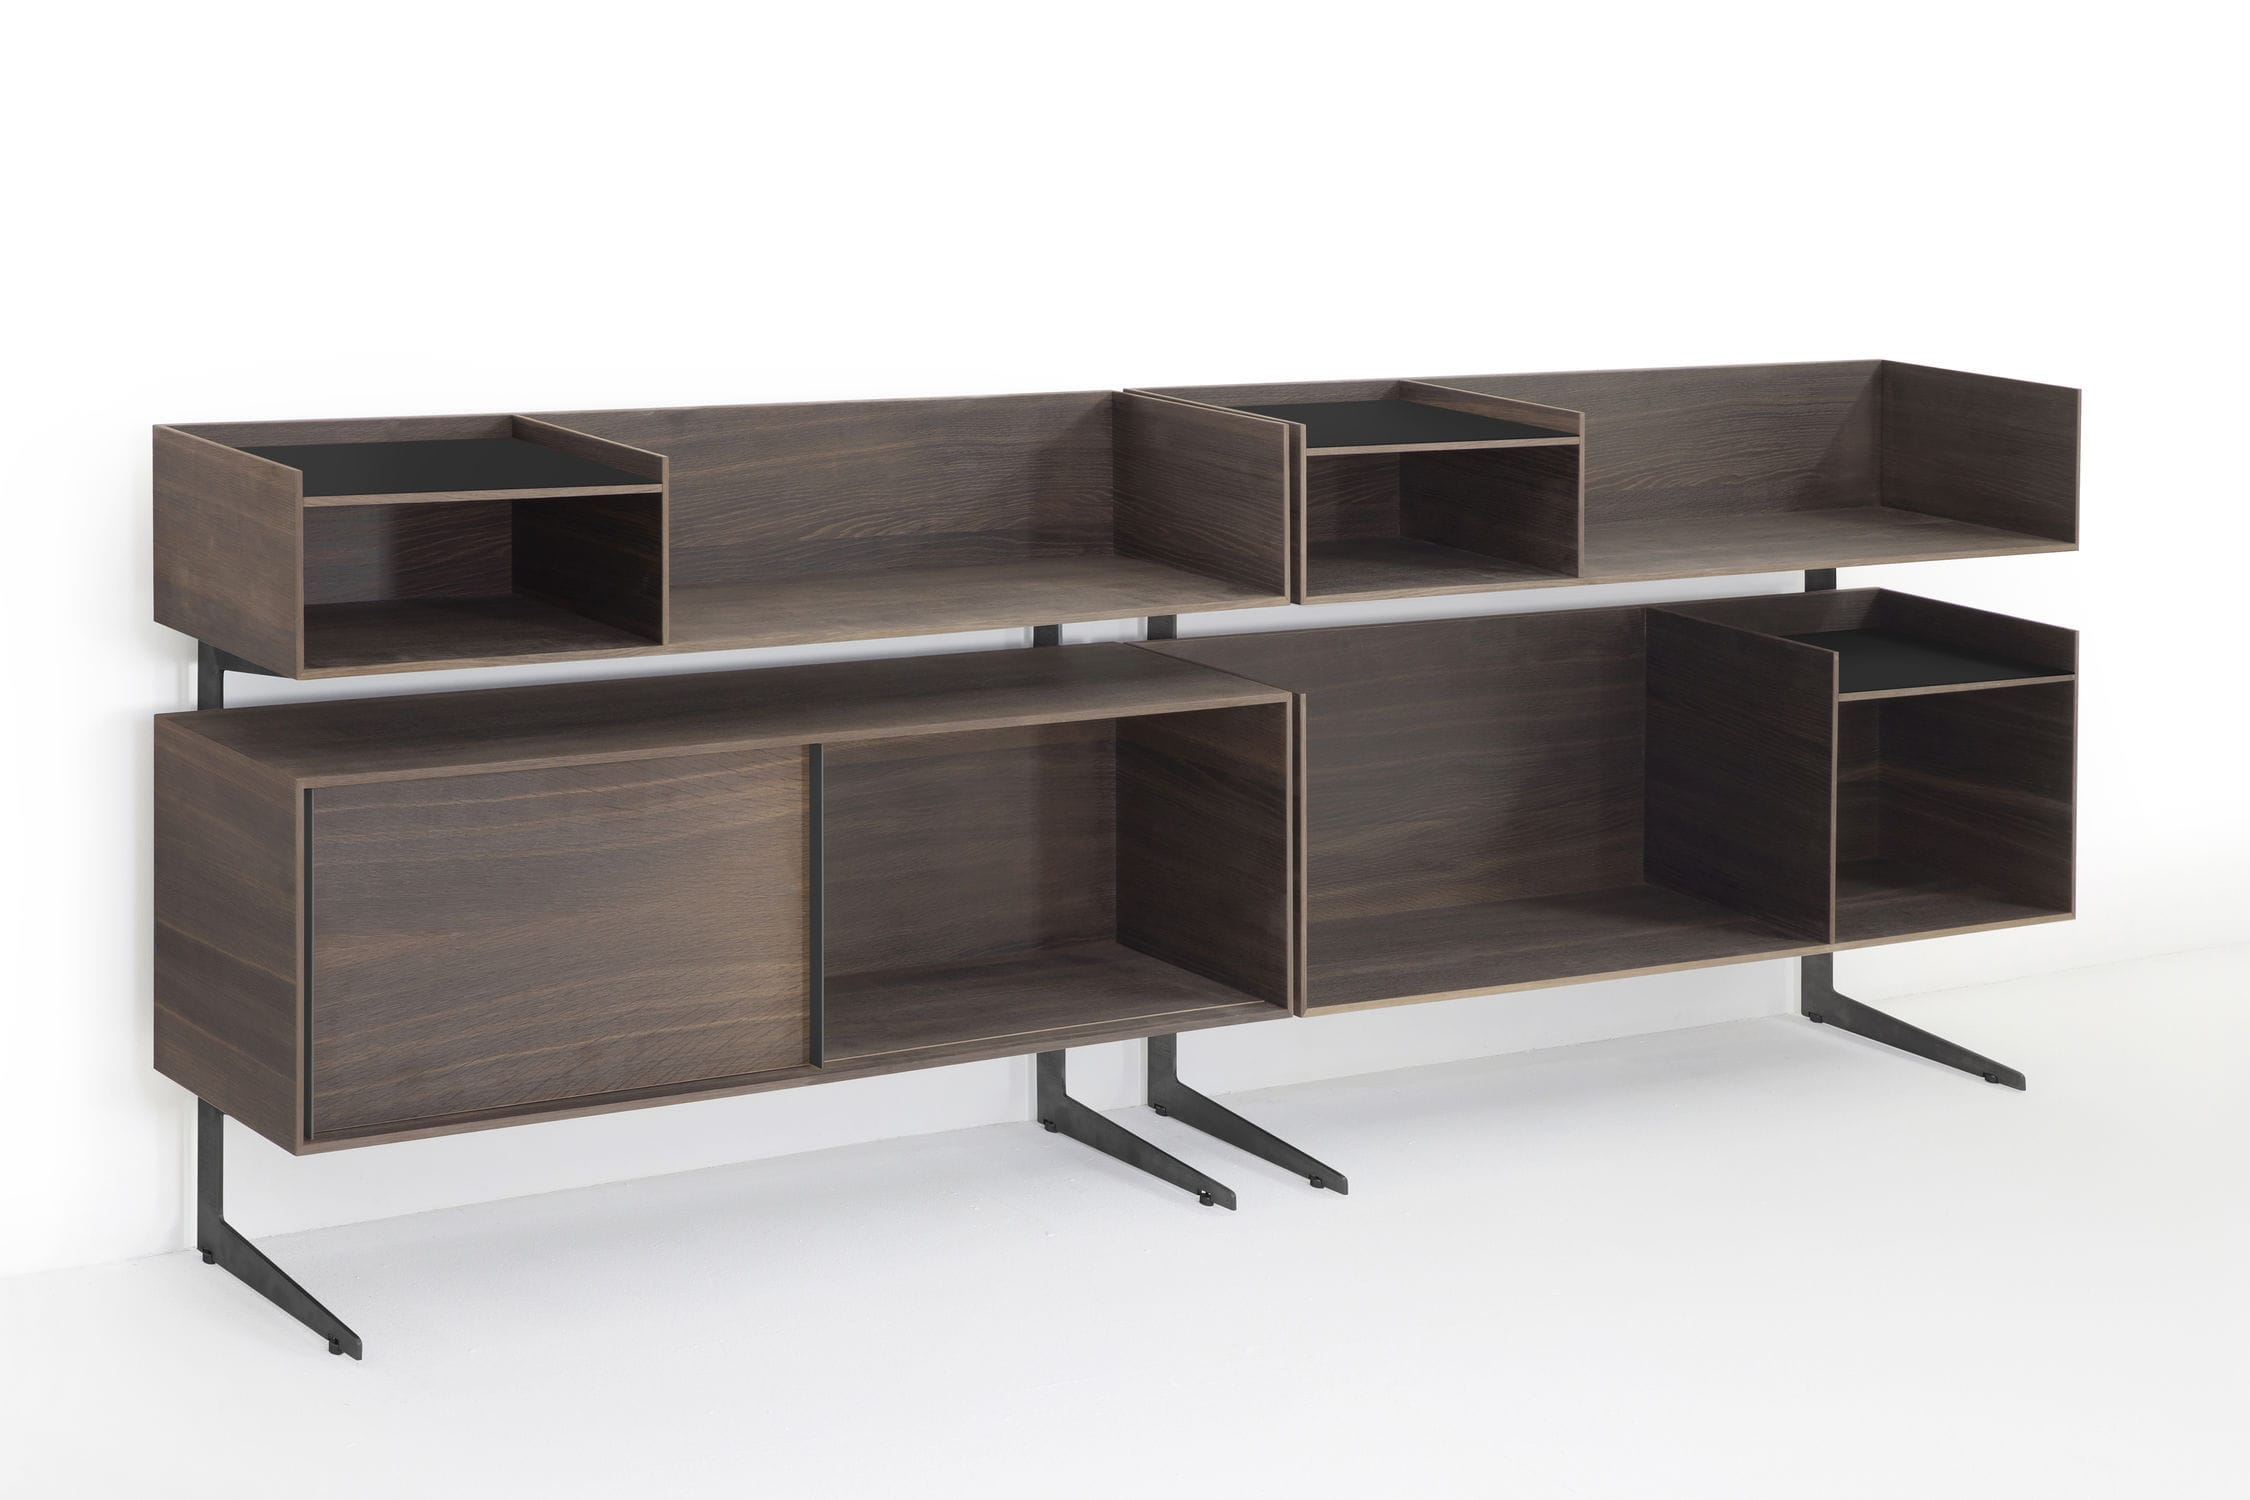 Sideboard Holz Metall Modernes Sideboard Holz Metall Court Yard By Francesco Rota